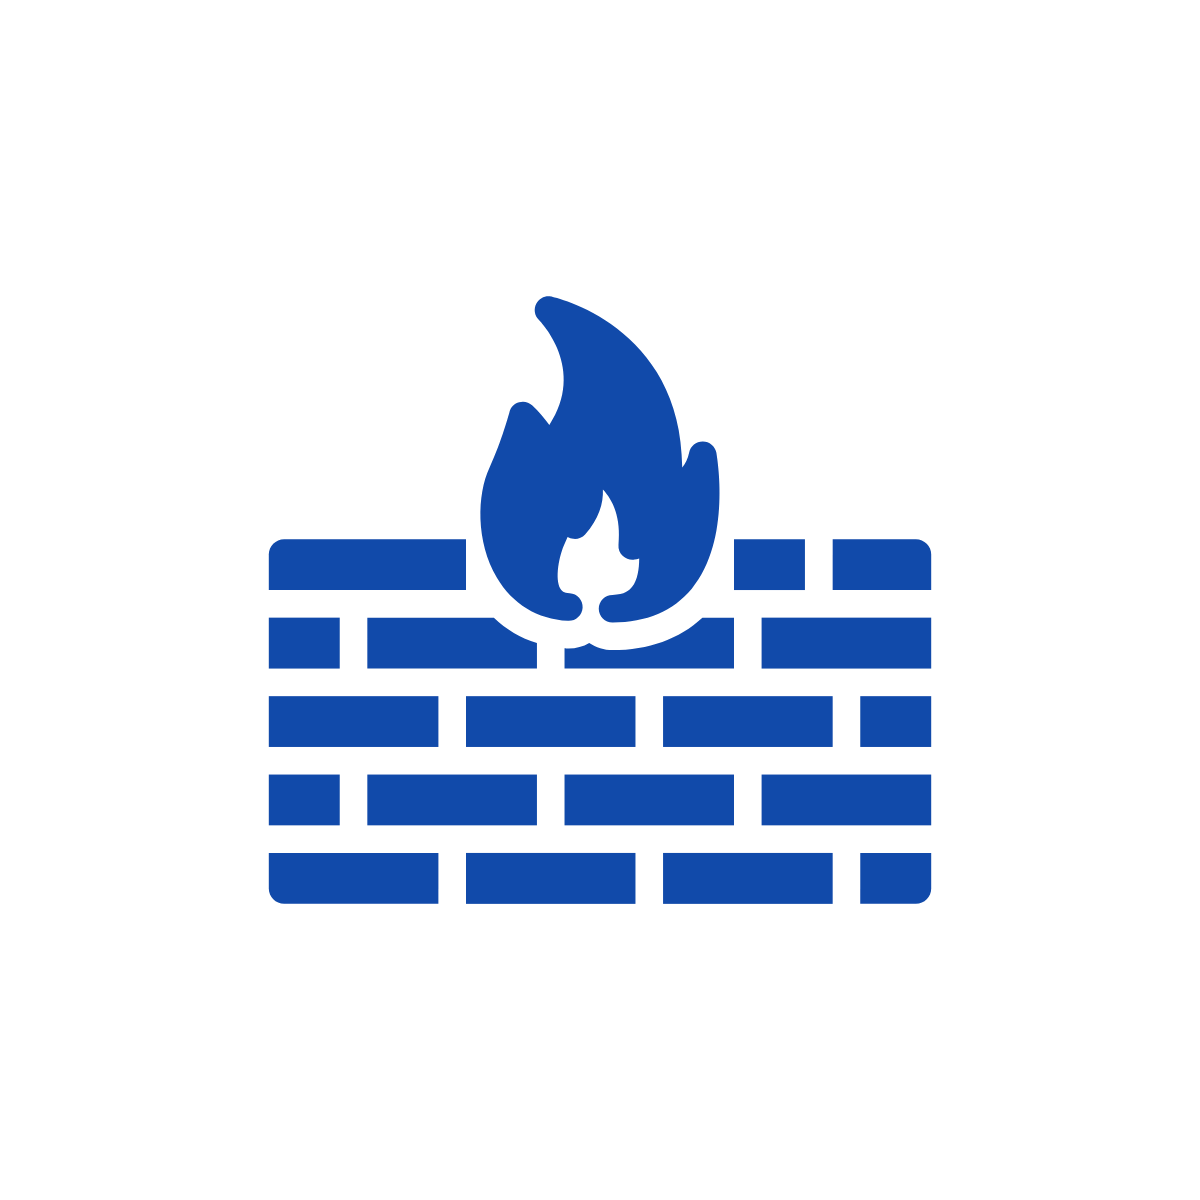 Brick wall with fire